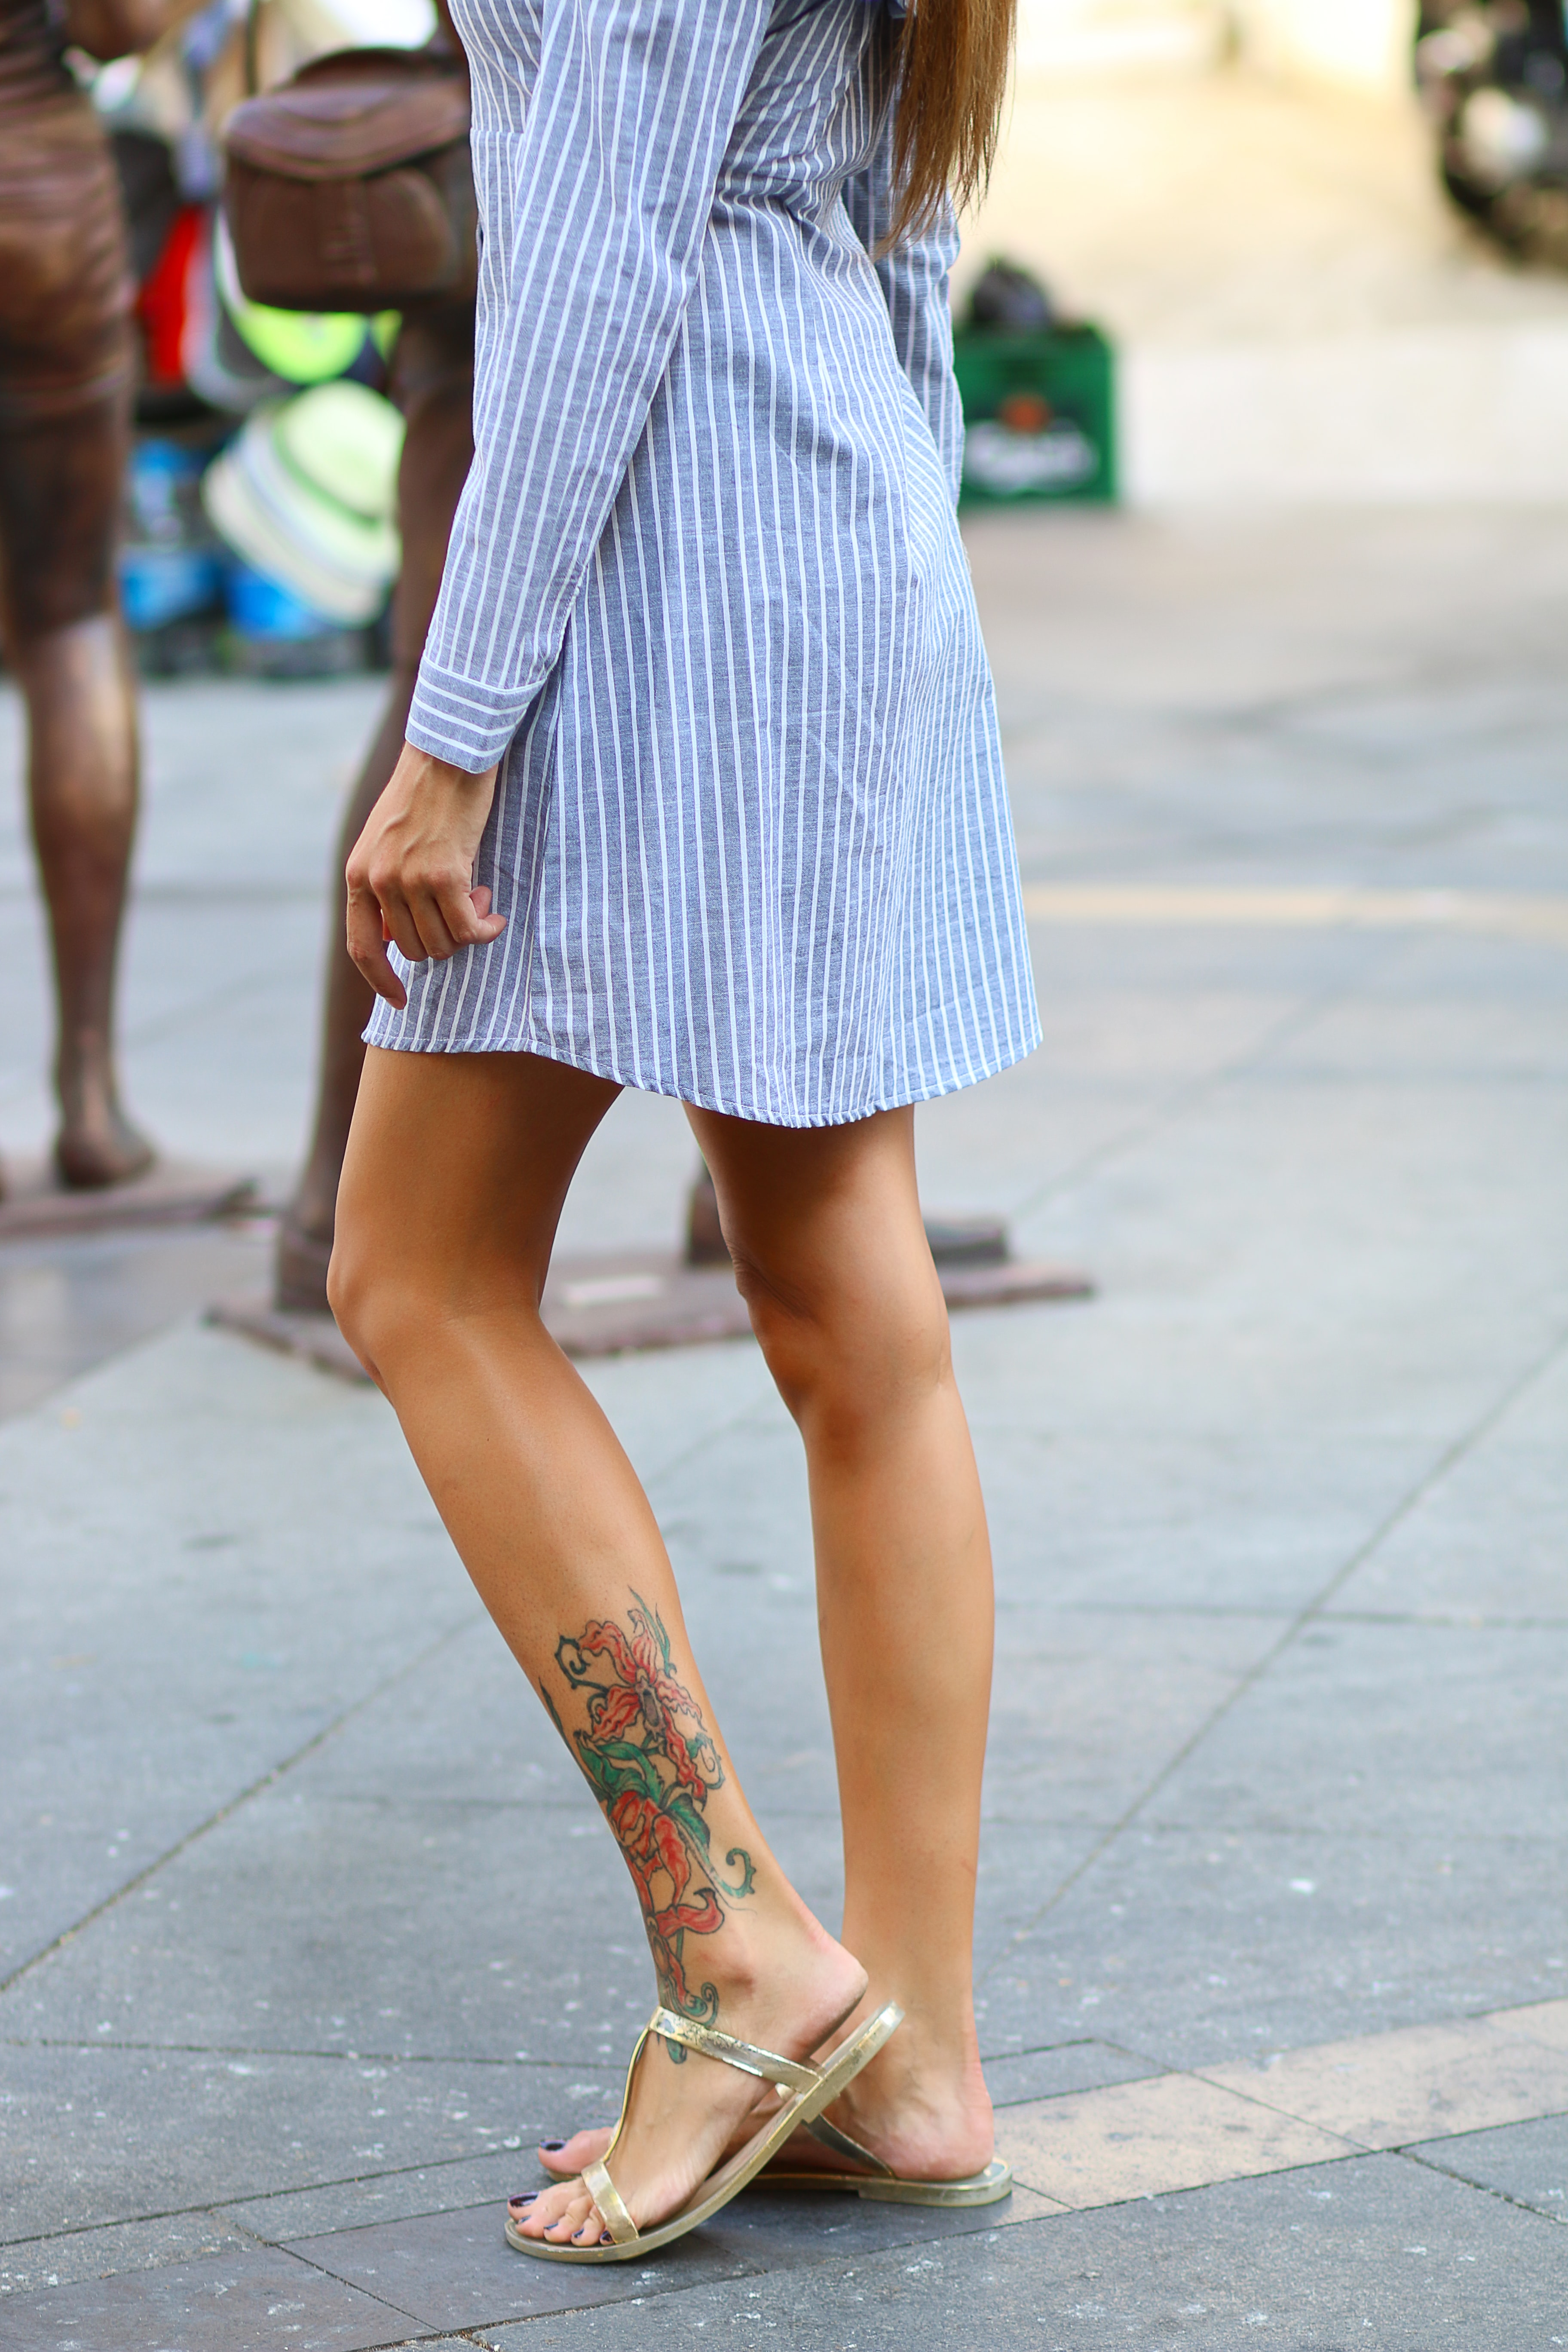 Low shot of a woman with an ornate ankle tattoo outside